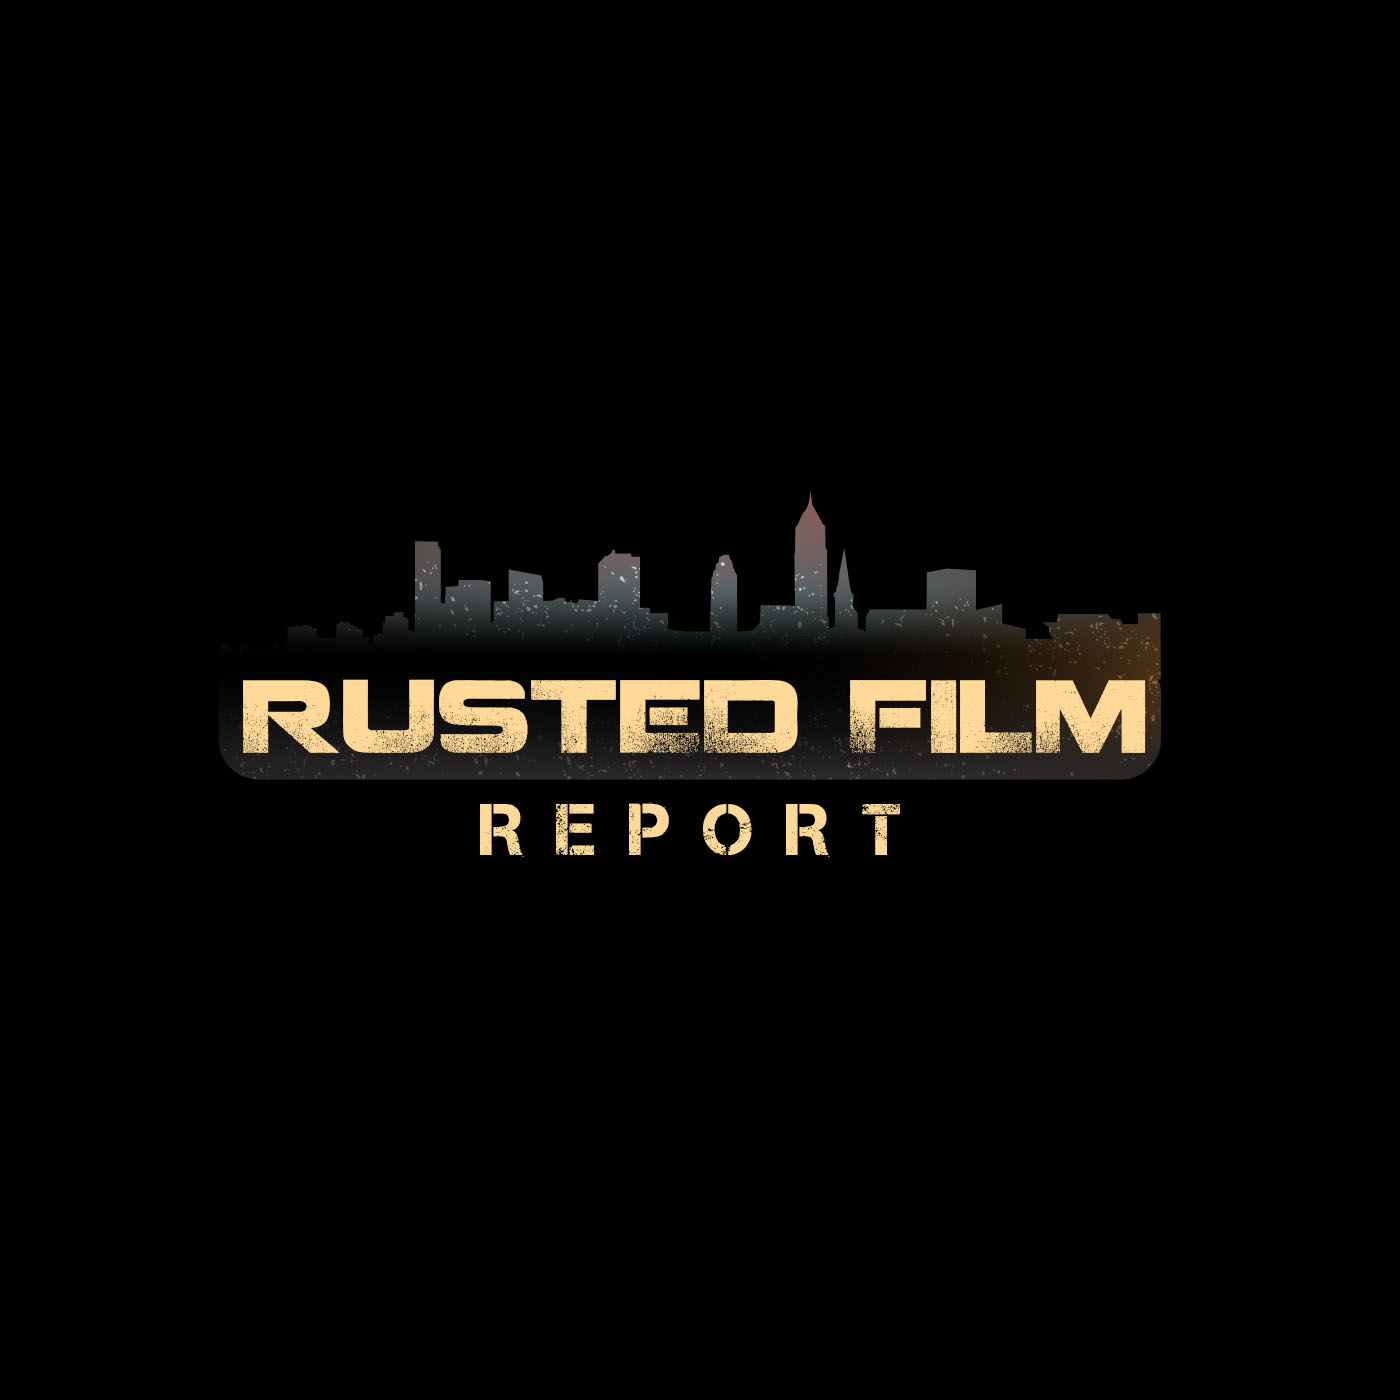 Coming Soon: Rusted Film Re-cap of the #CIFF